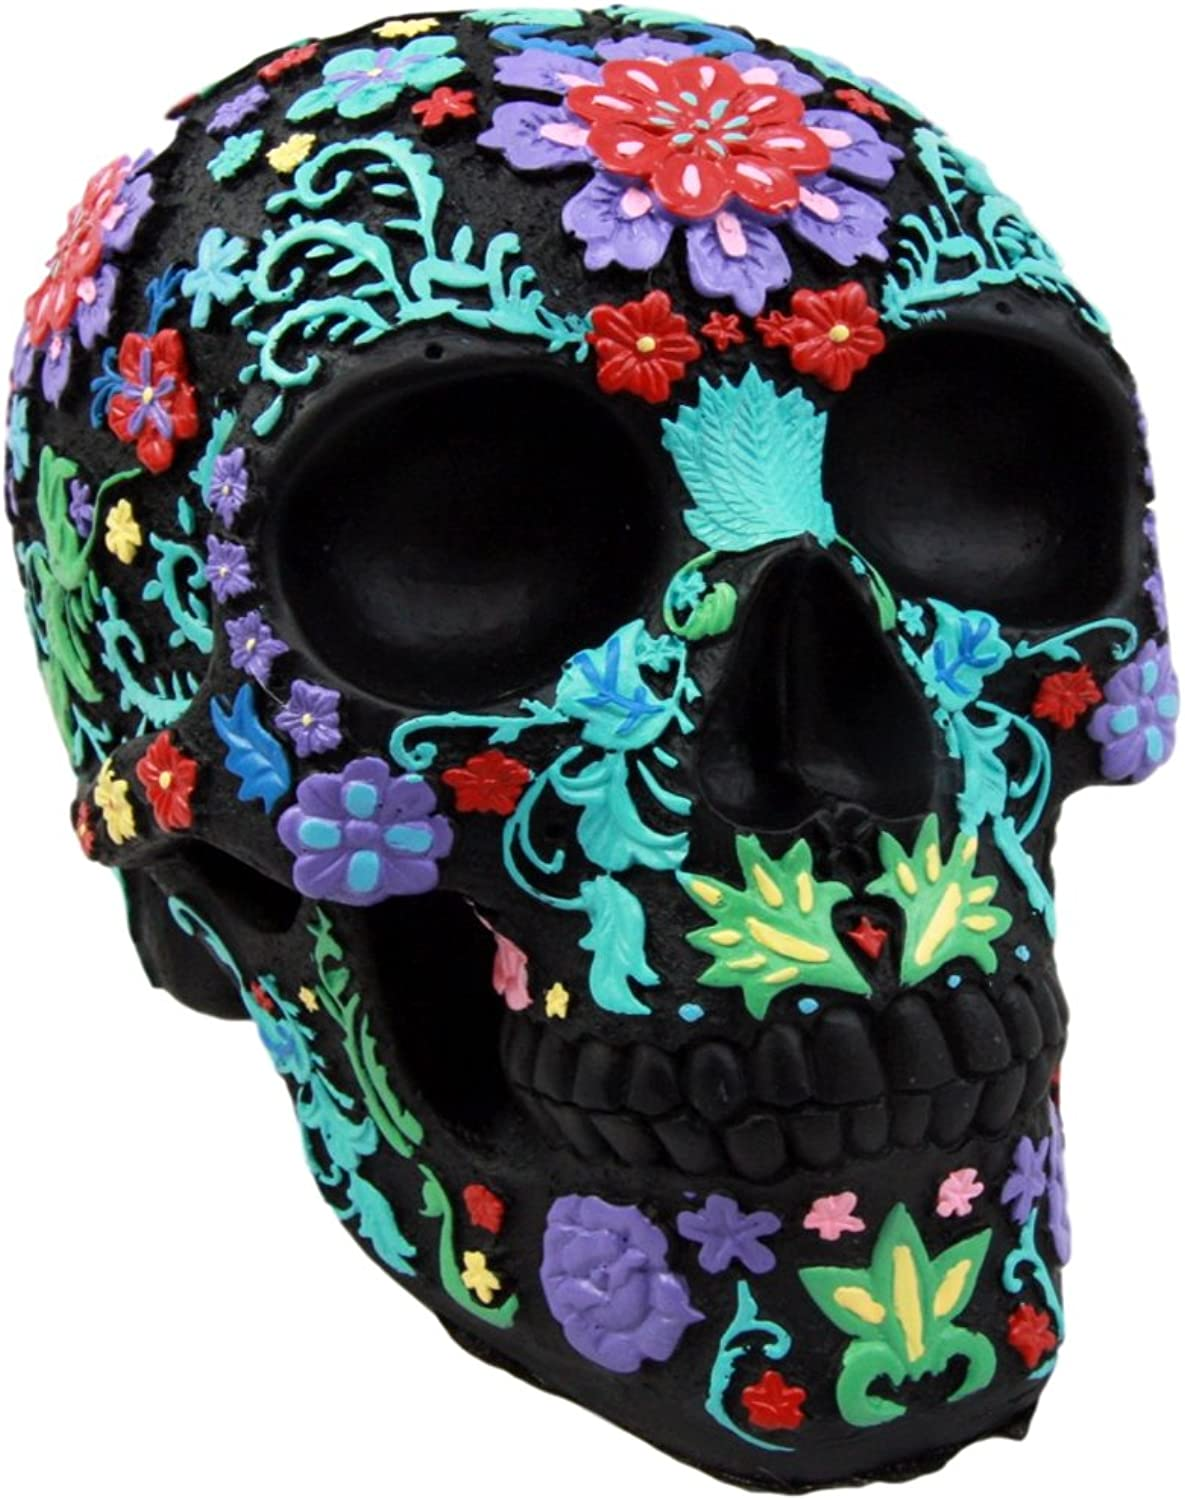 Atlantic Collectibles Day Of The Dead Black Multi colord Floral Tattoo Skull Figurine 8.25 L